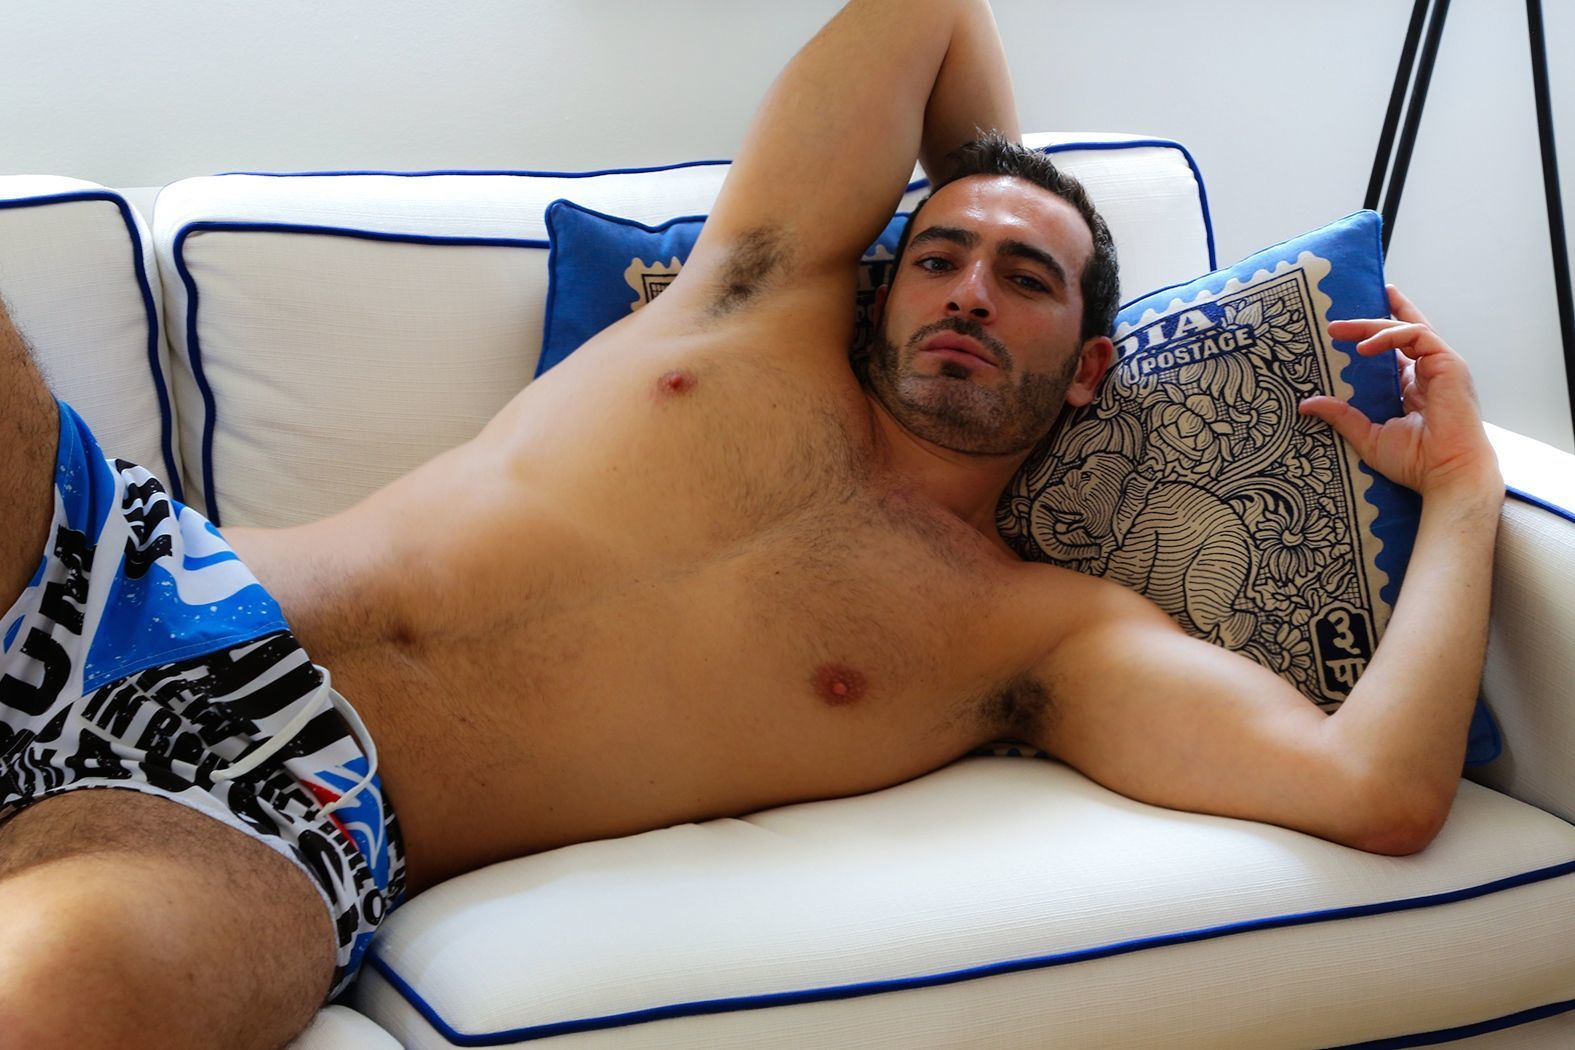 video gay french escort a nimes